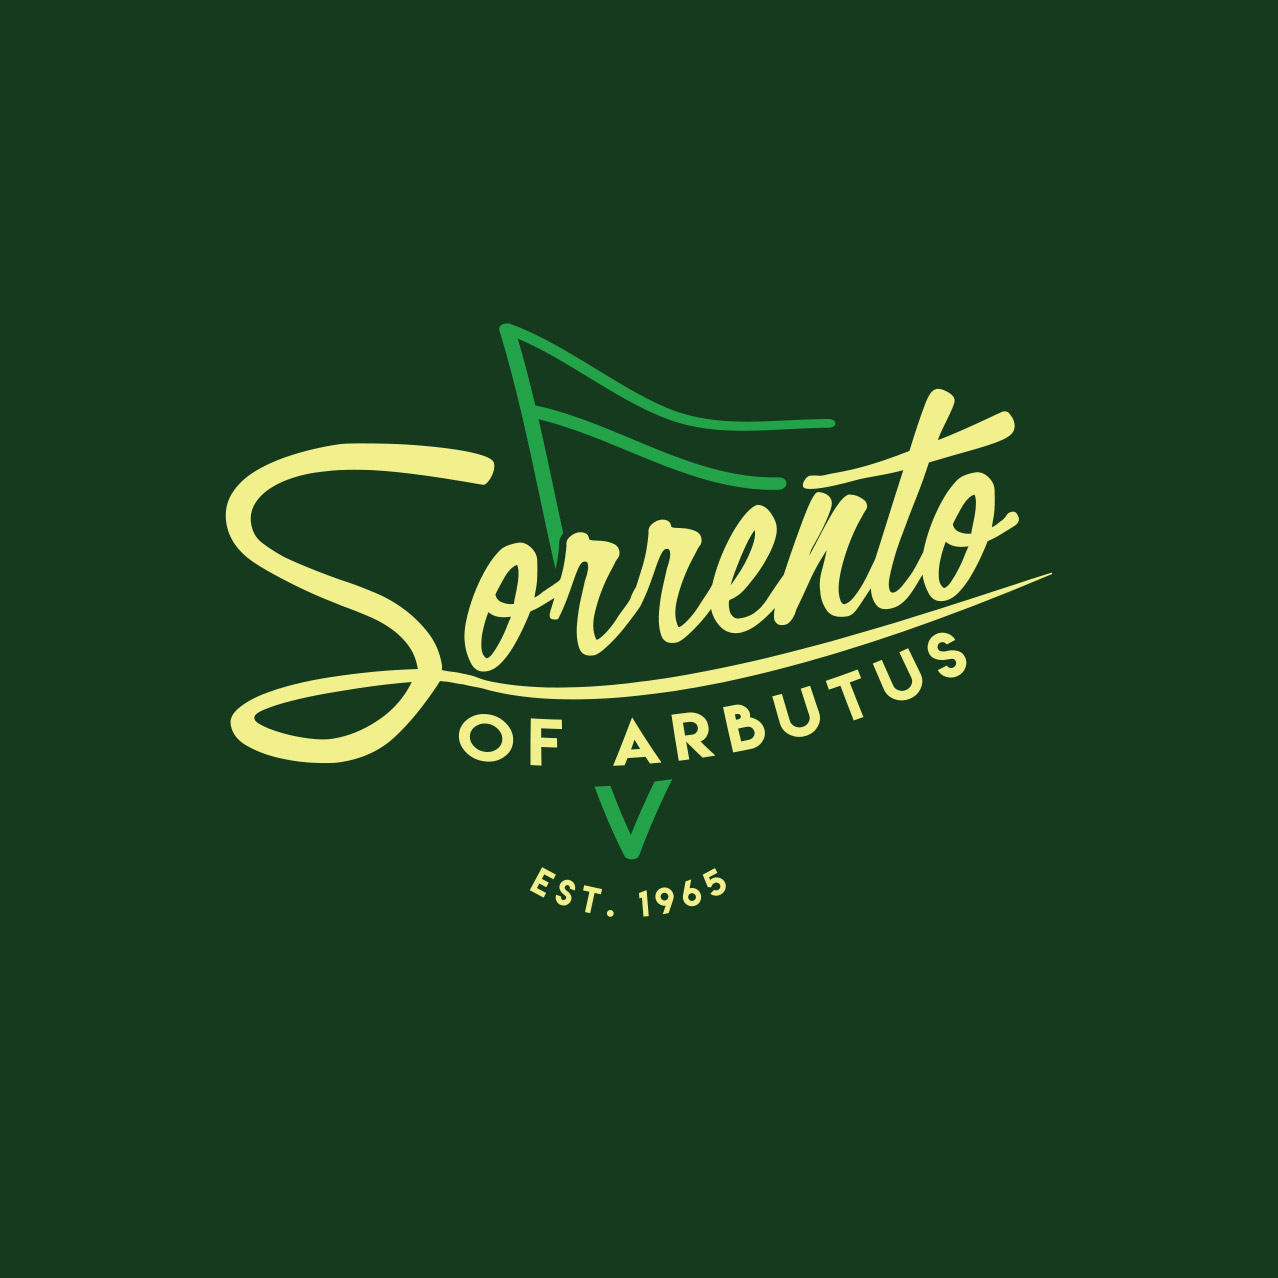 Sorrento of Arbutus